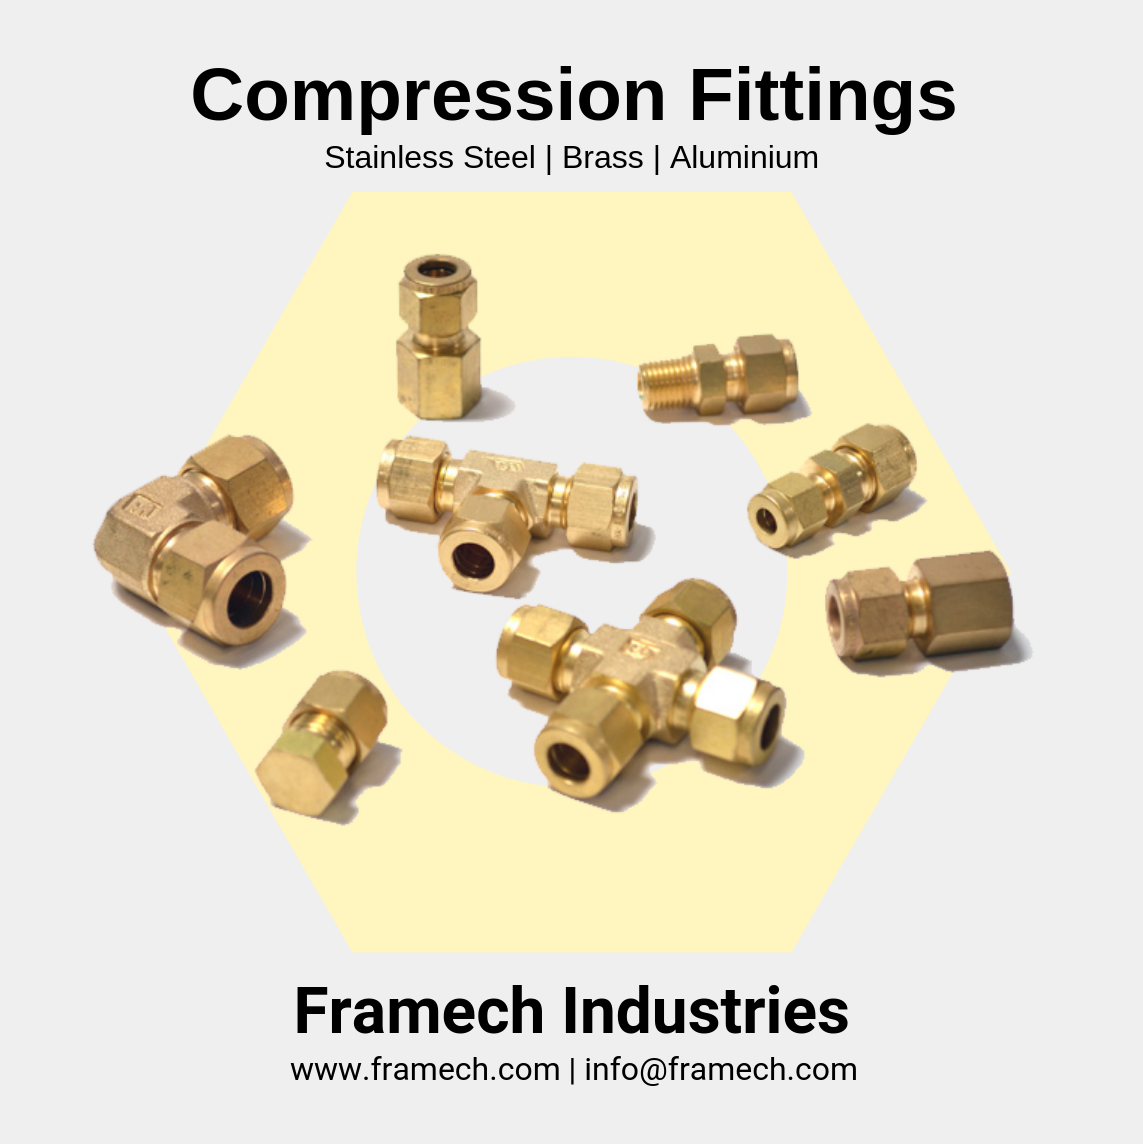 Pin On Precision Components And Parts